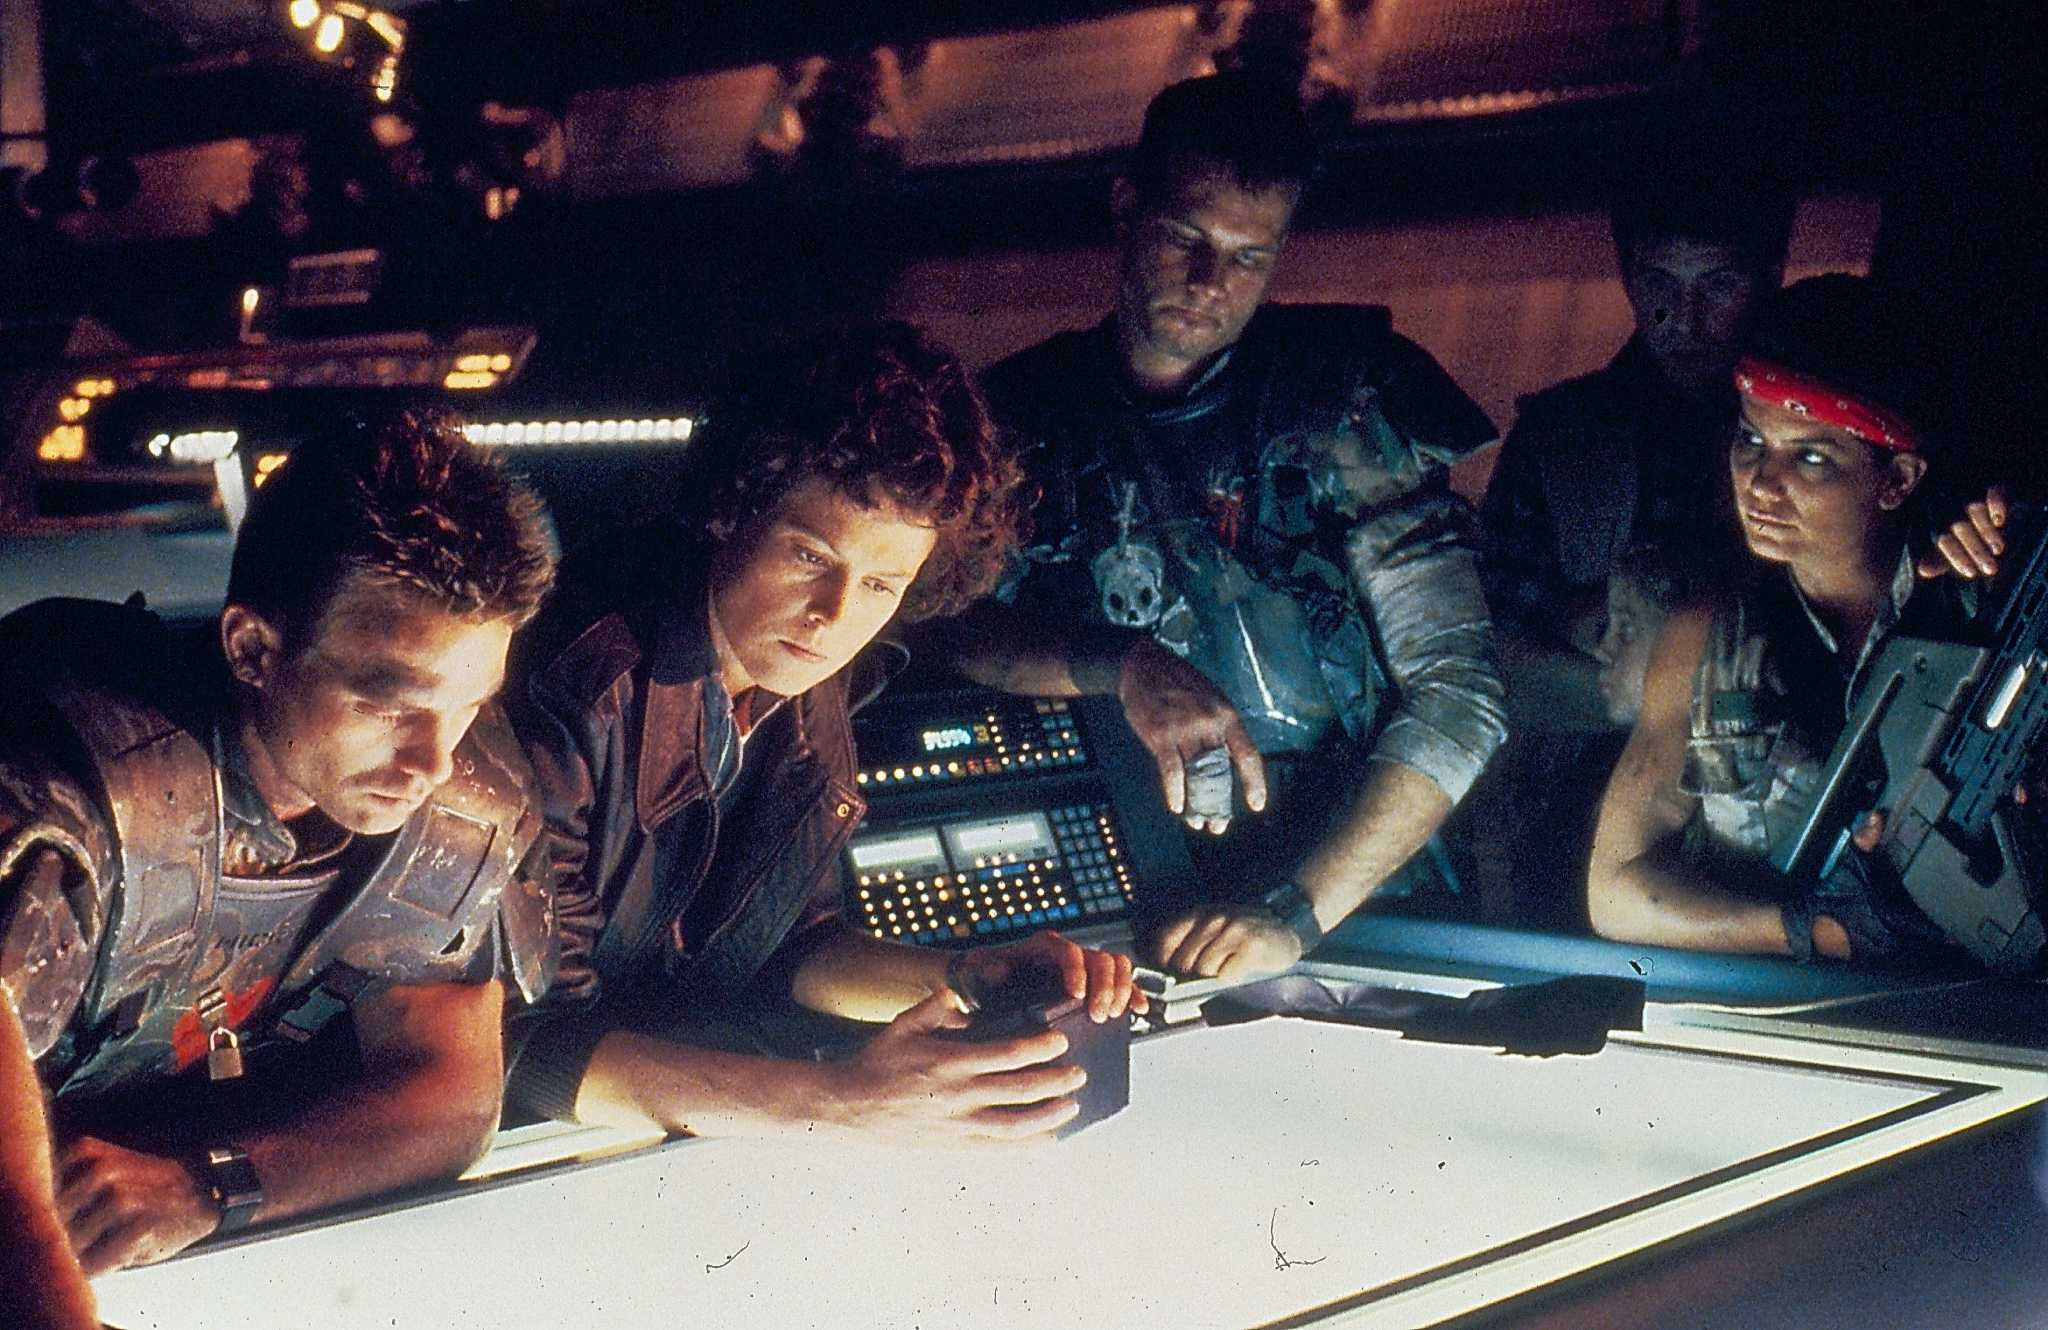 When Ellen Ripley's story continued in James Cameron's  Aliens it was equally important that she should be surrounded by another supporting cast of well-defined roughneck characters – in this case a platoon of marines whose appearance and dialog James Cameron modelled on soldiers from the era of the Vietnam War.